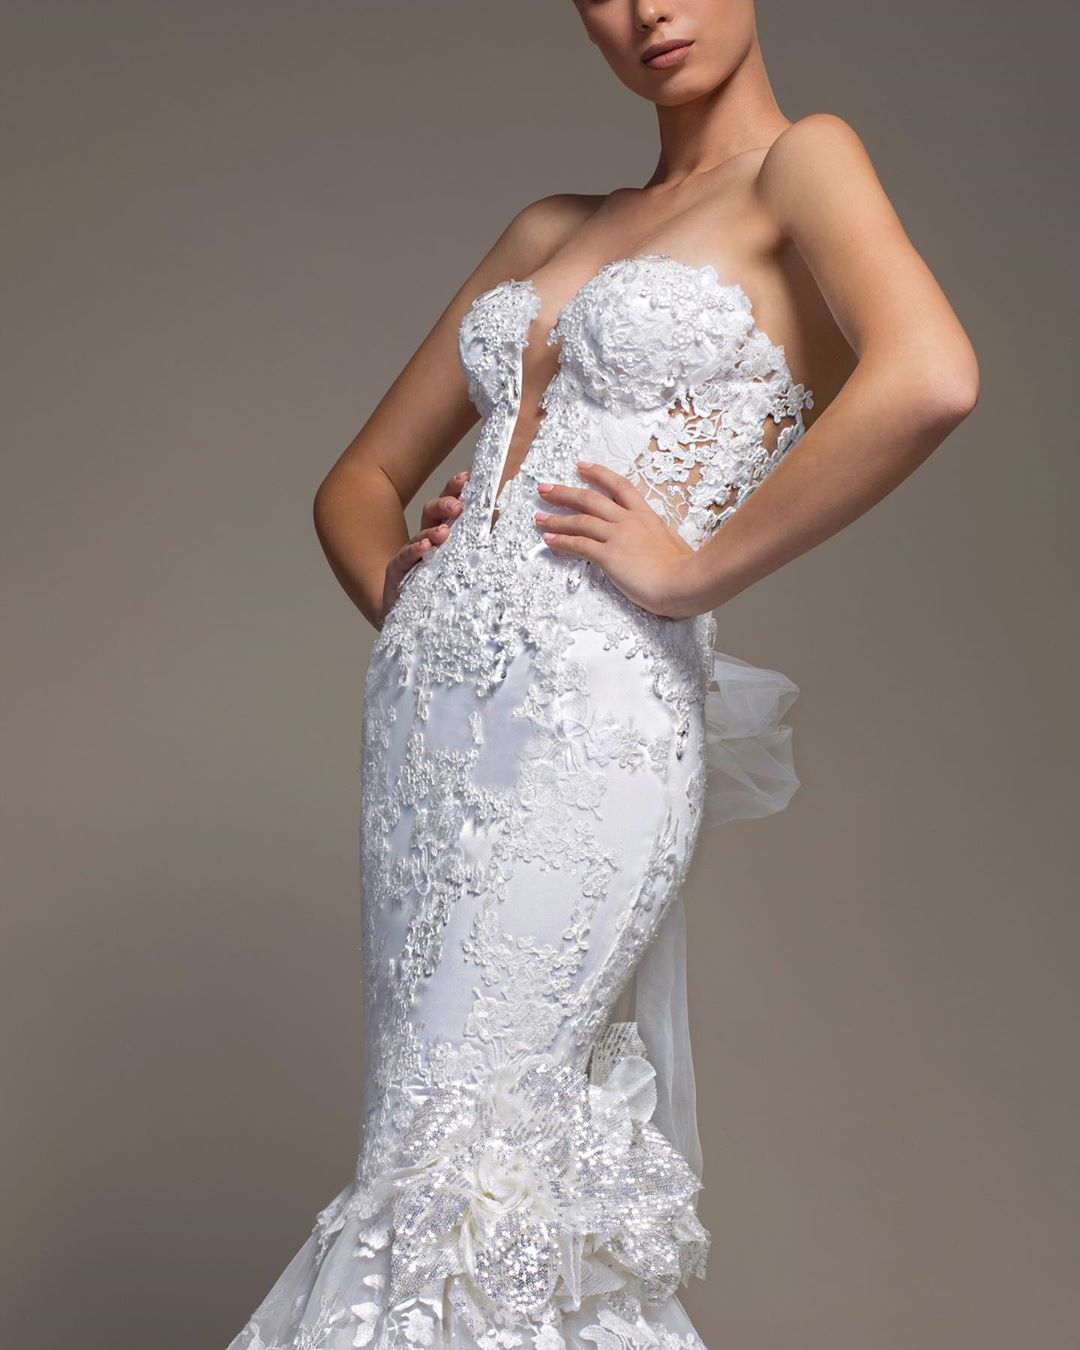 Pnina Tornai On Instagram When It Fits Like A Glove Thanks To That Signature Pninatornai Corset Re Ball Gowns Wedding Ball Dresses Ball Gown Wedding Dress